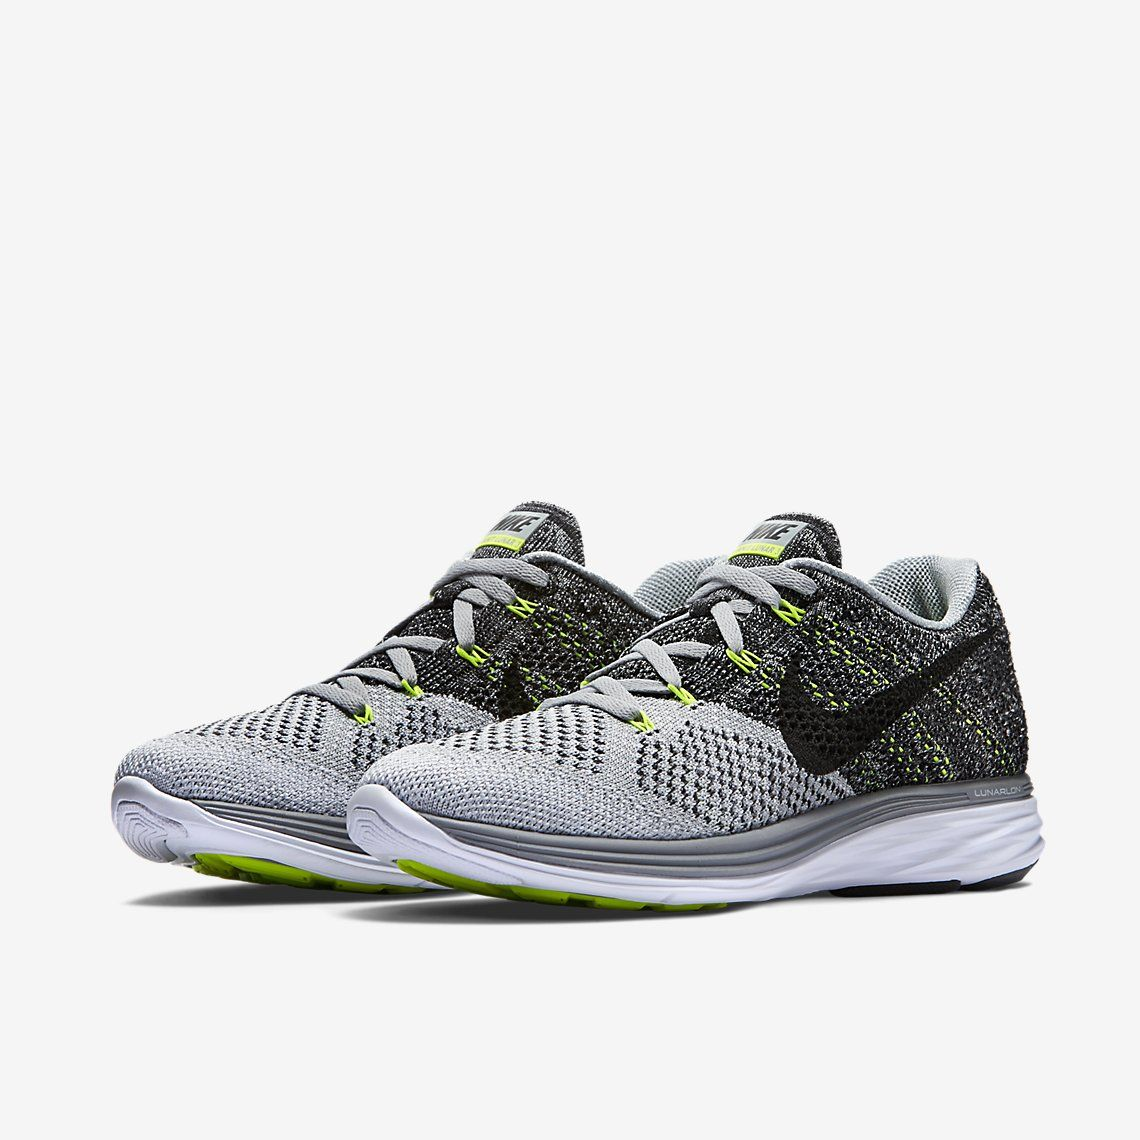 Nike Flyknit Lunar 3 Men's Running Shoe.